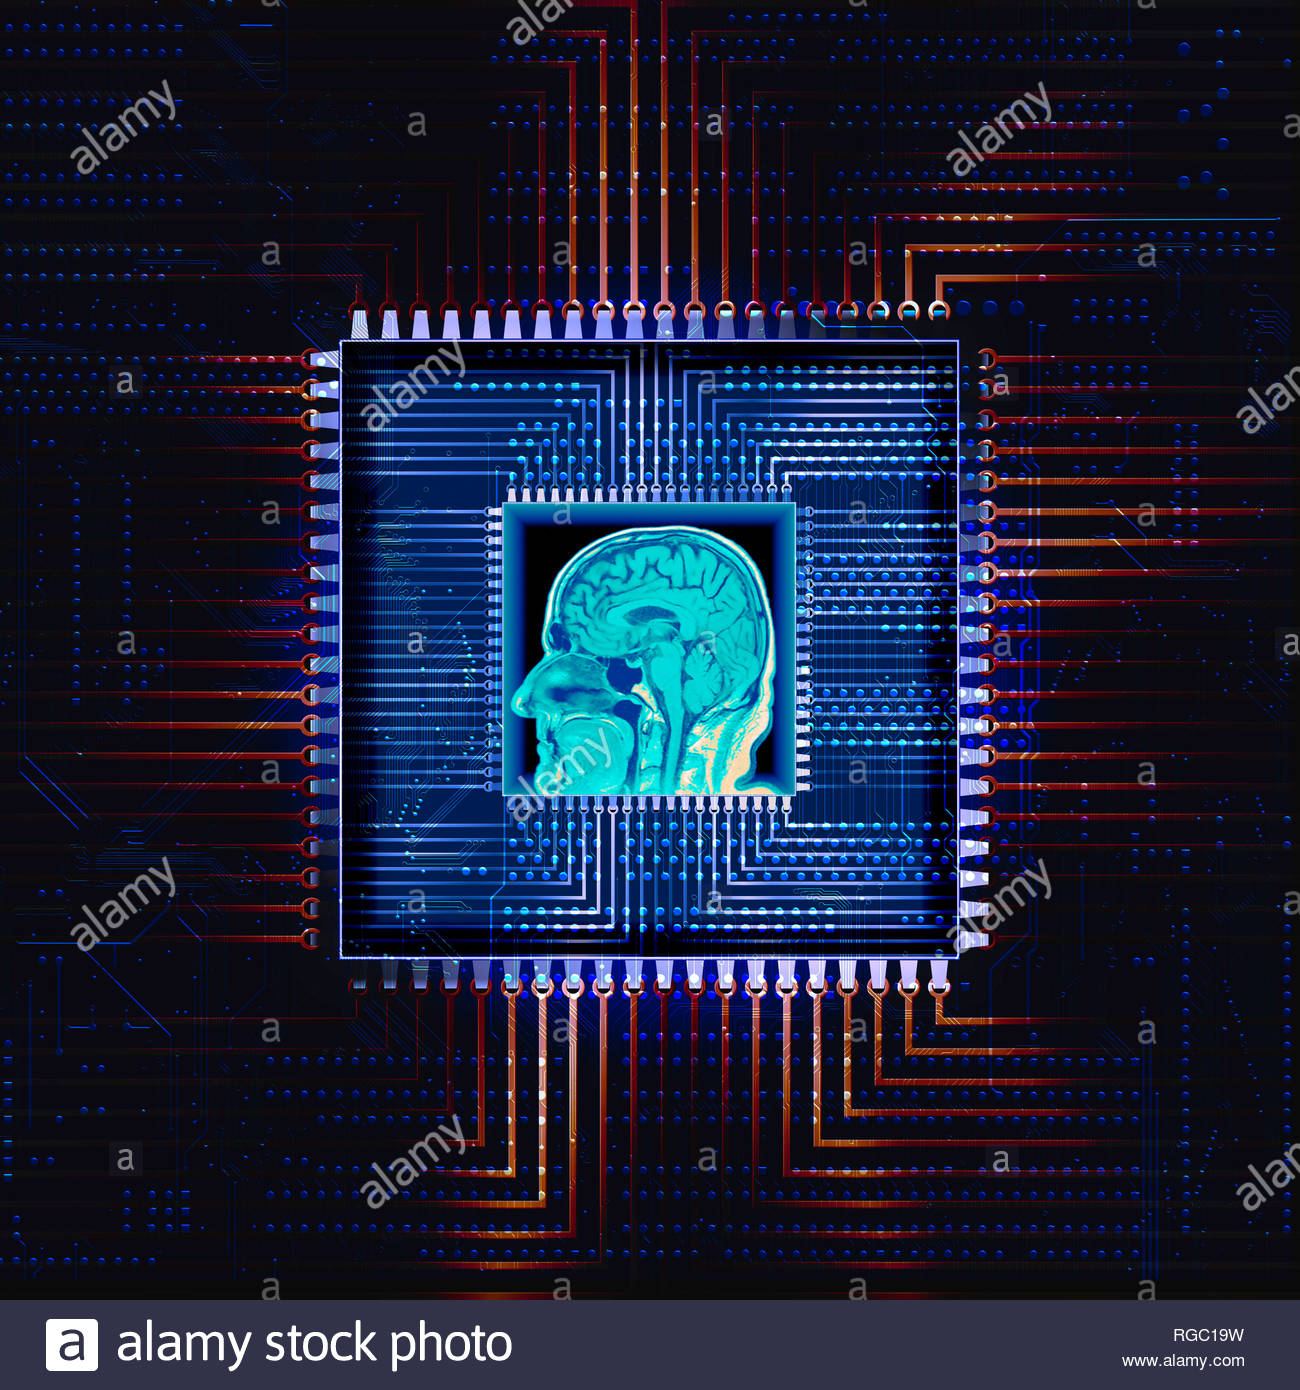 MRI Magnetic resonance imaging medical imaging technique radiology scan of a human head Stock Photo